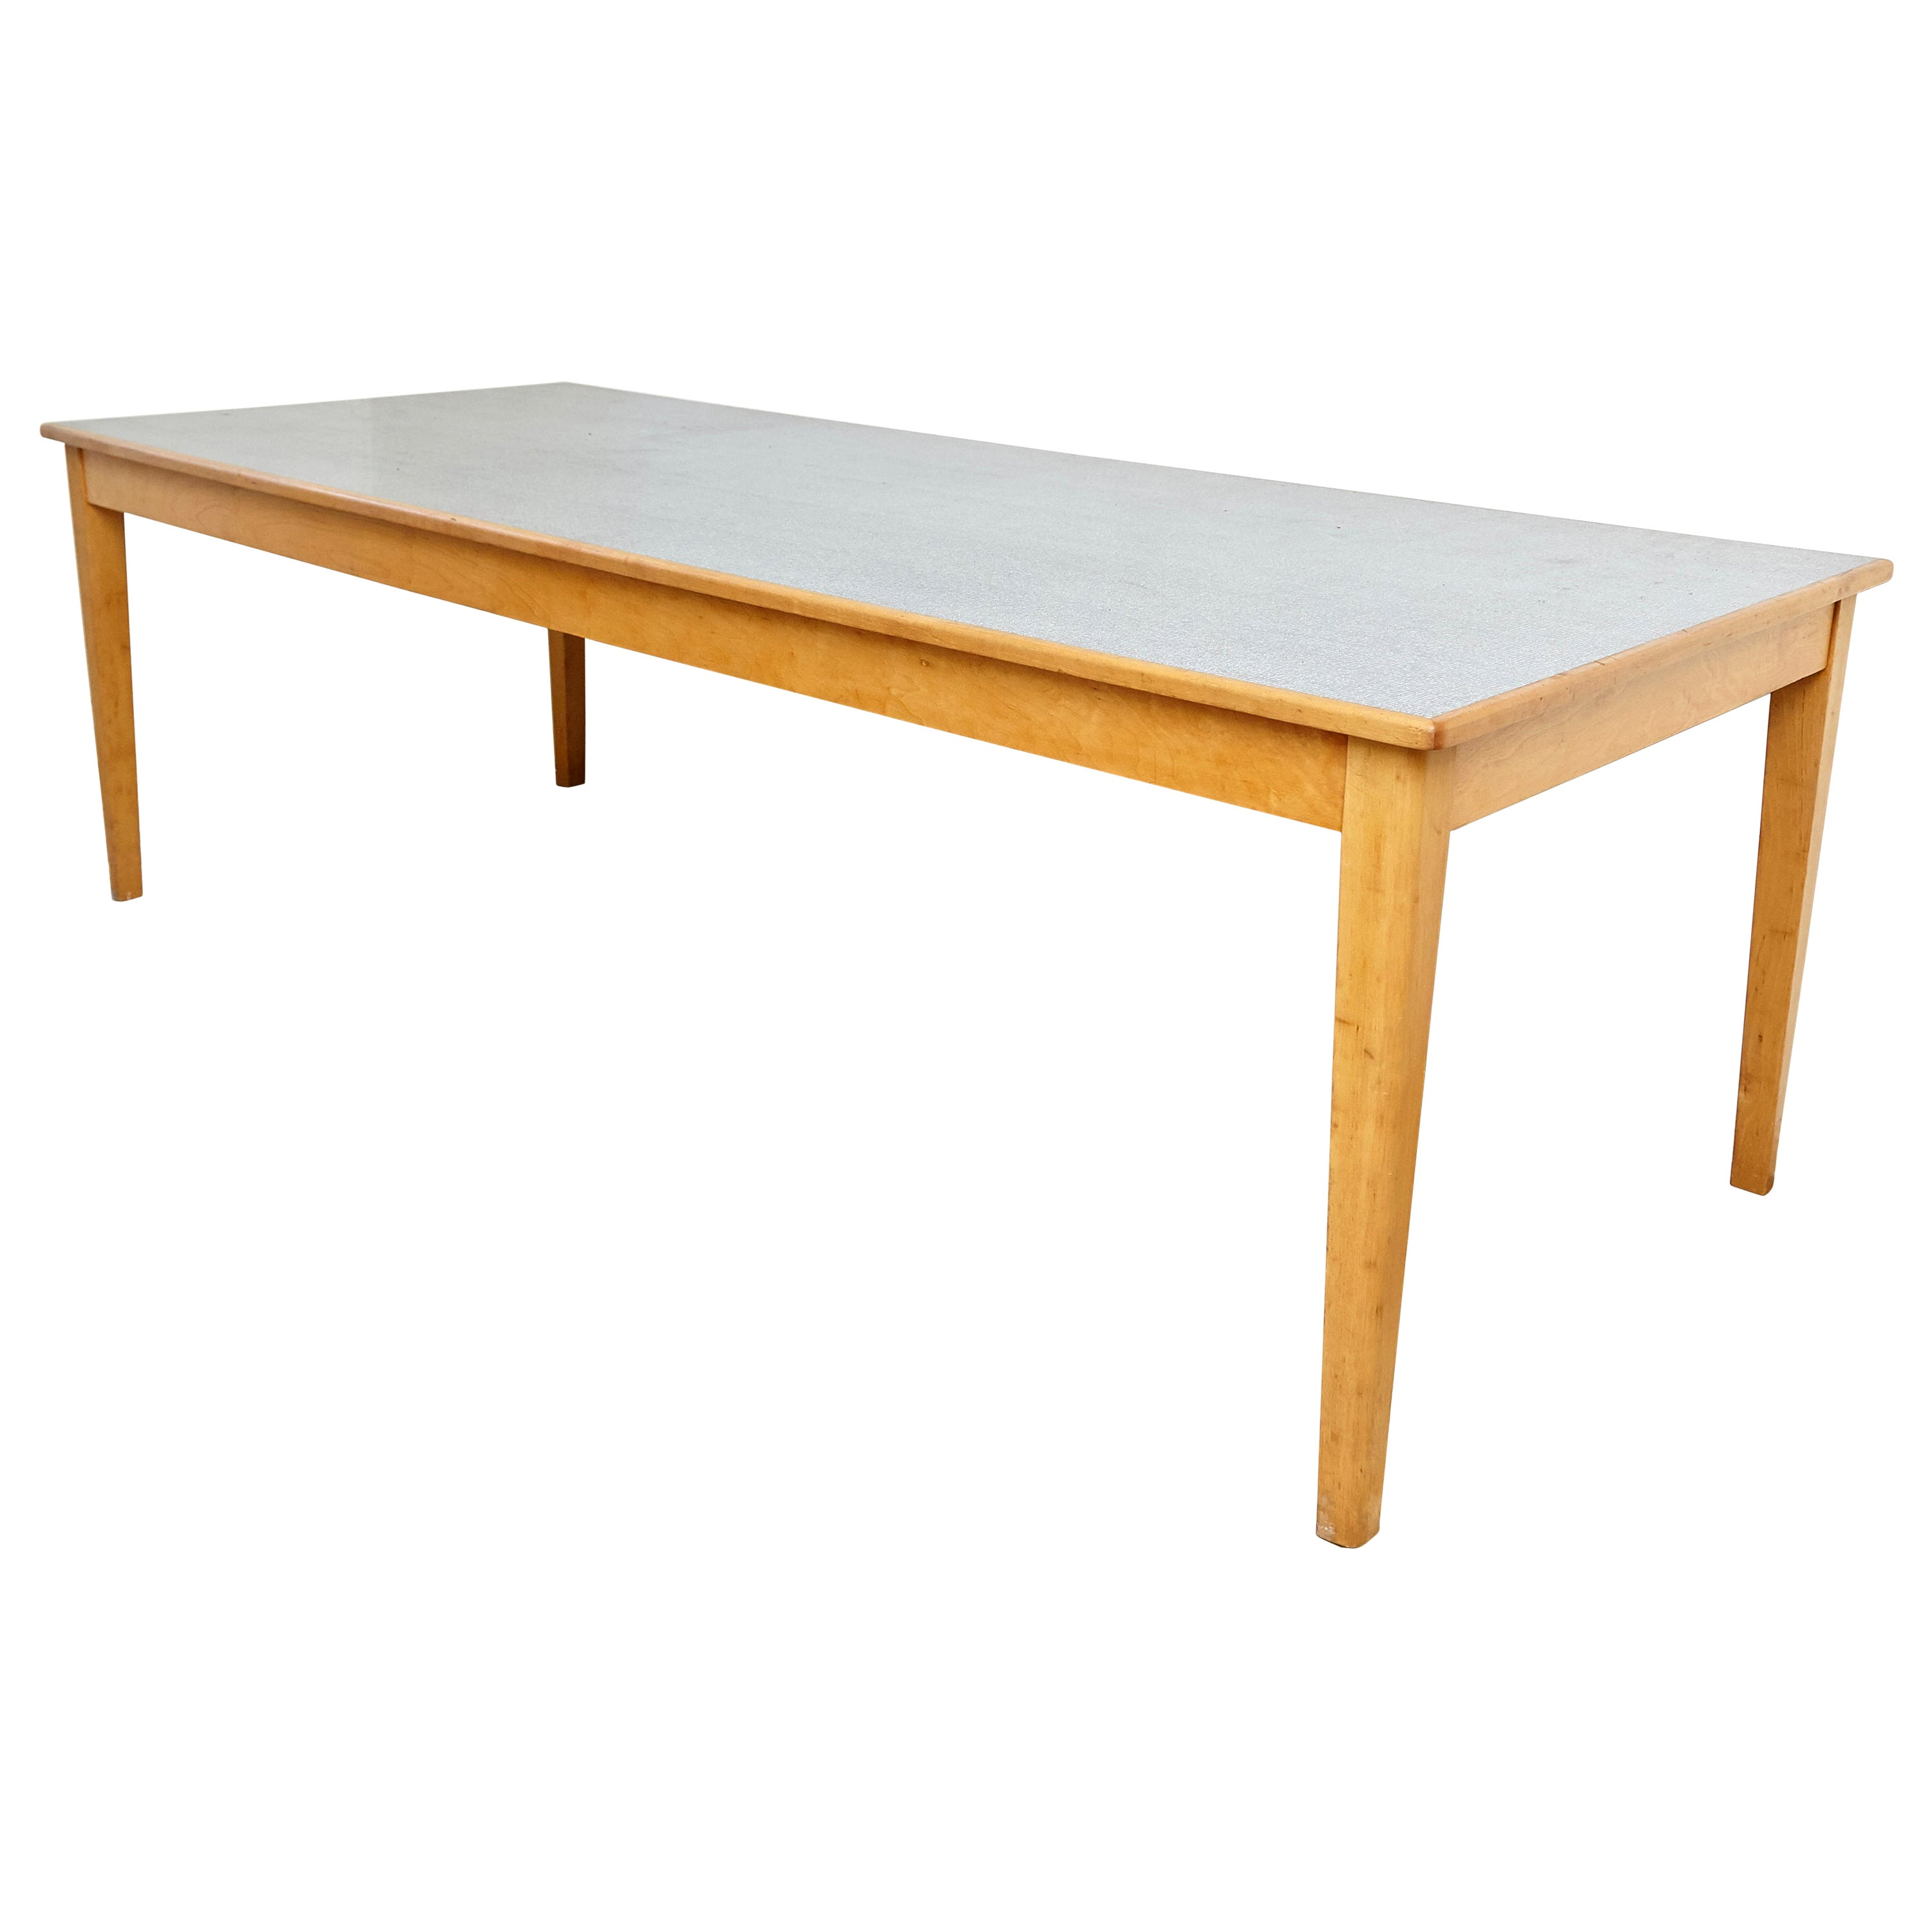 Large Scandinavian Wood and Formica Dining Table, circa 1960